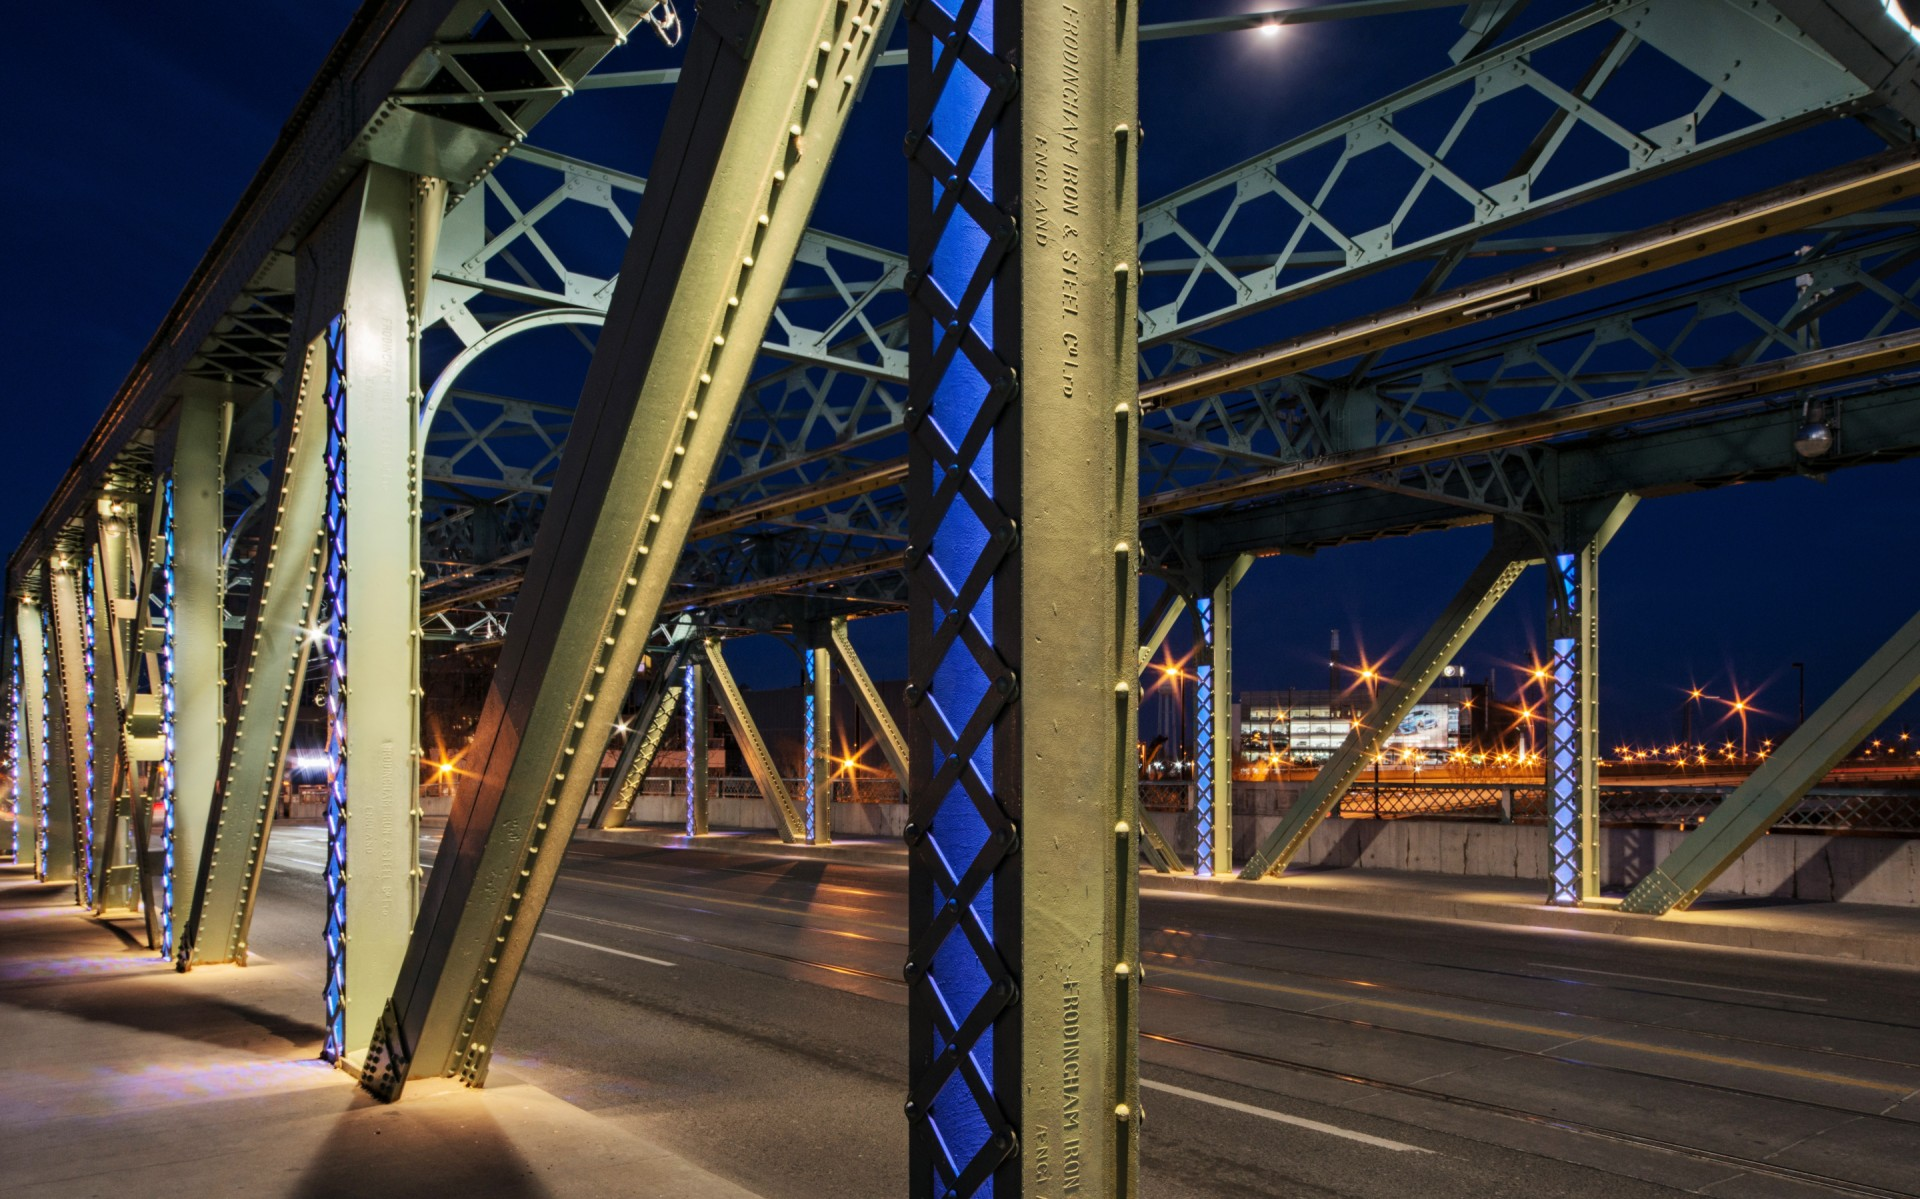 Color was used in a subtle way on the bridge's vertical posts, which colors changing to match events in the city.